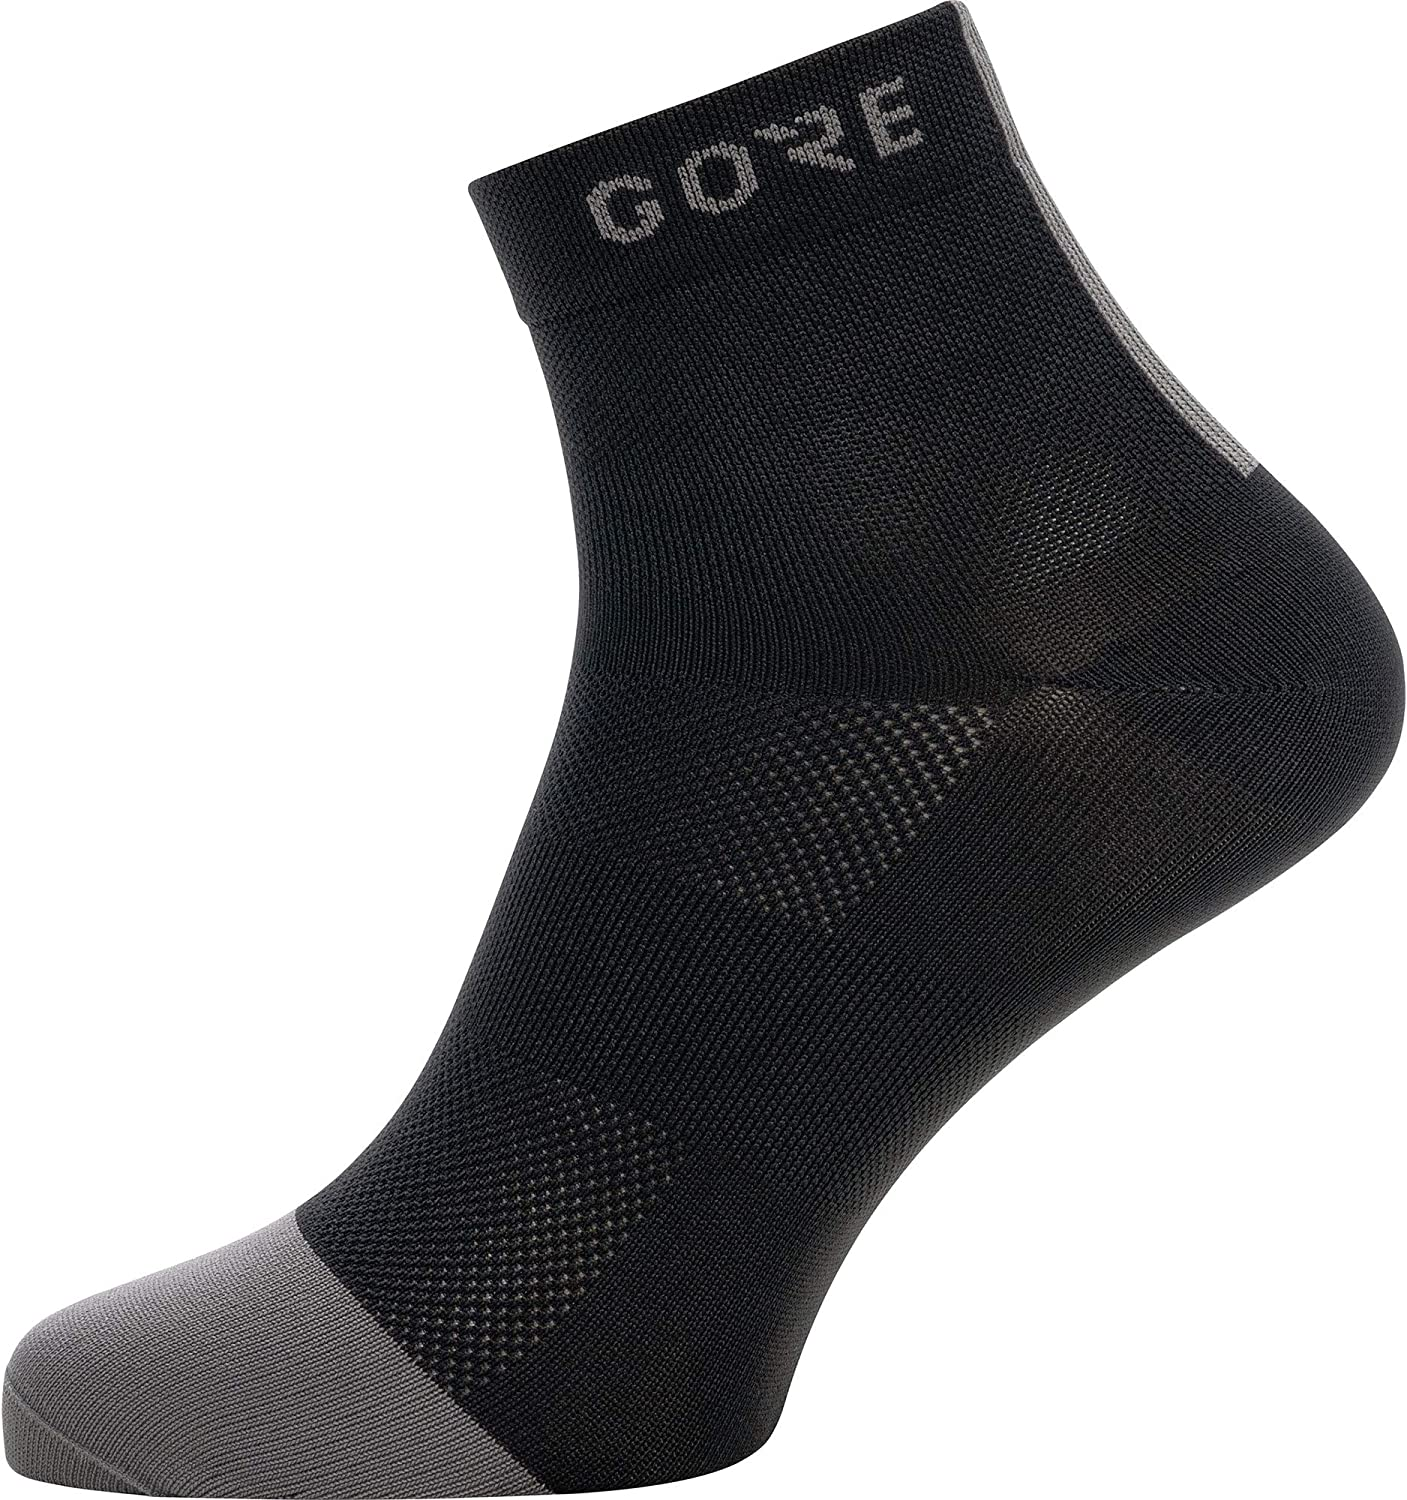 GORE WEAR M Light Calcetines medianos Unisex adulto Pack de 2